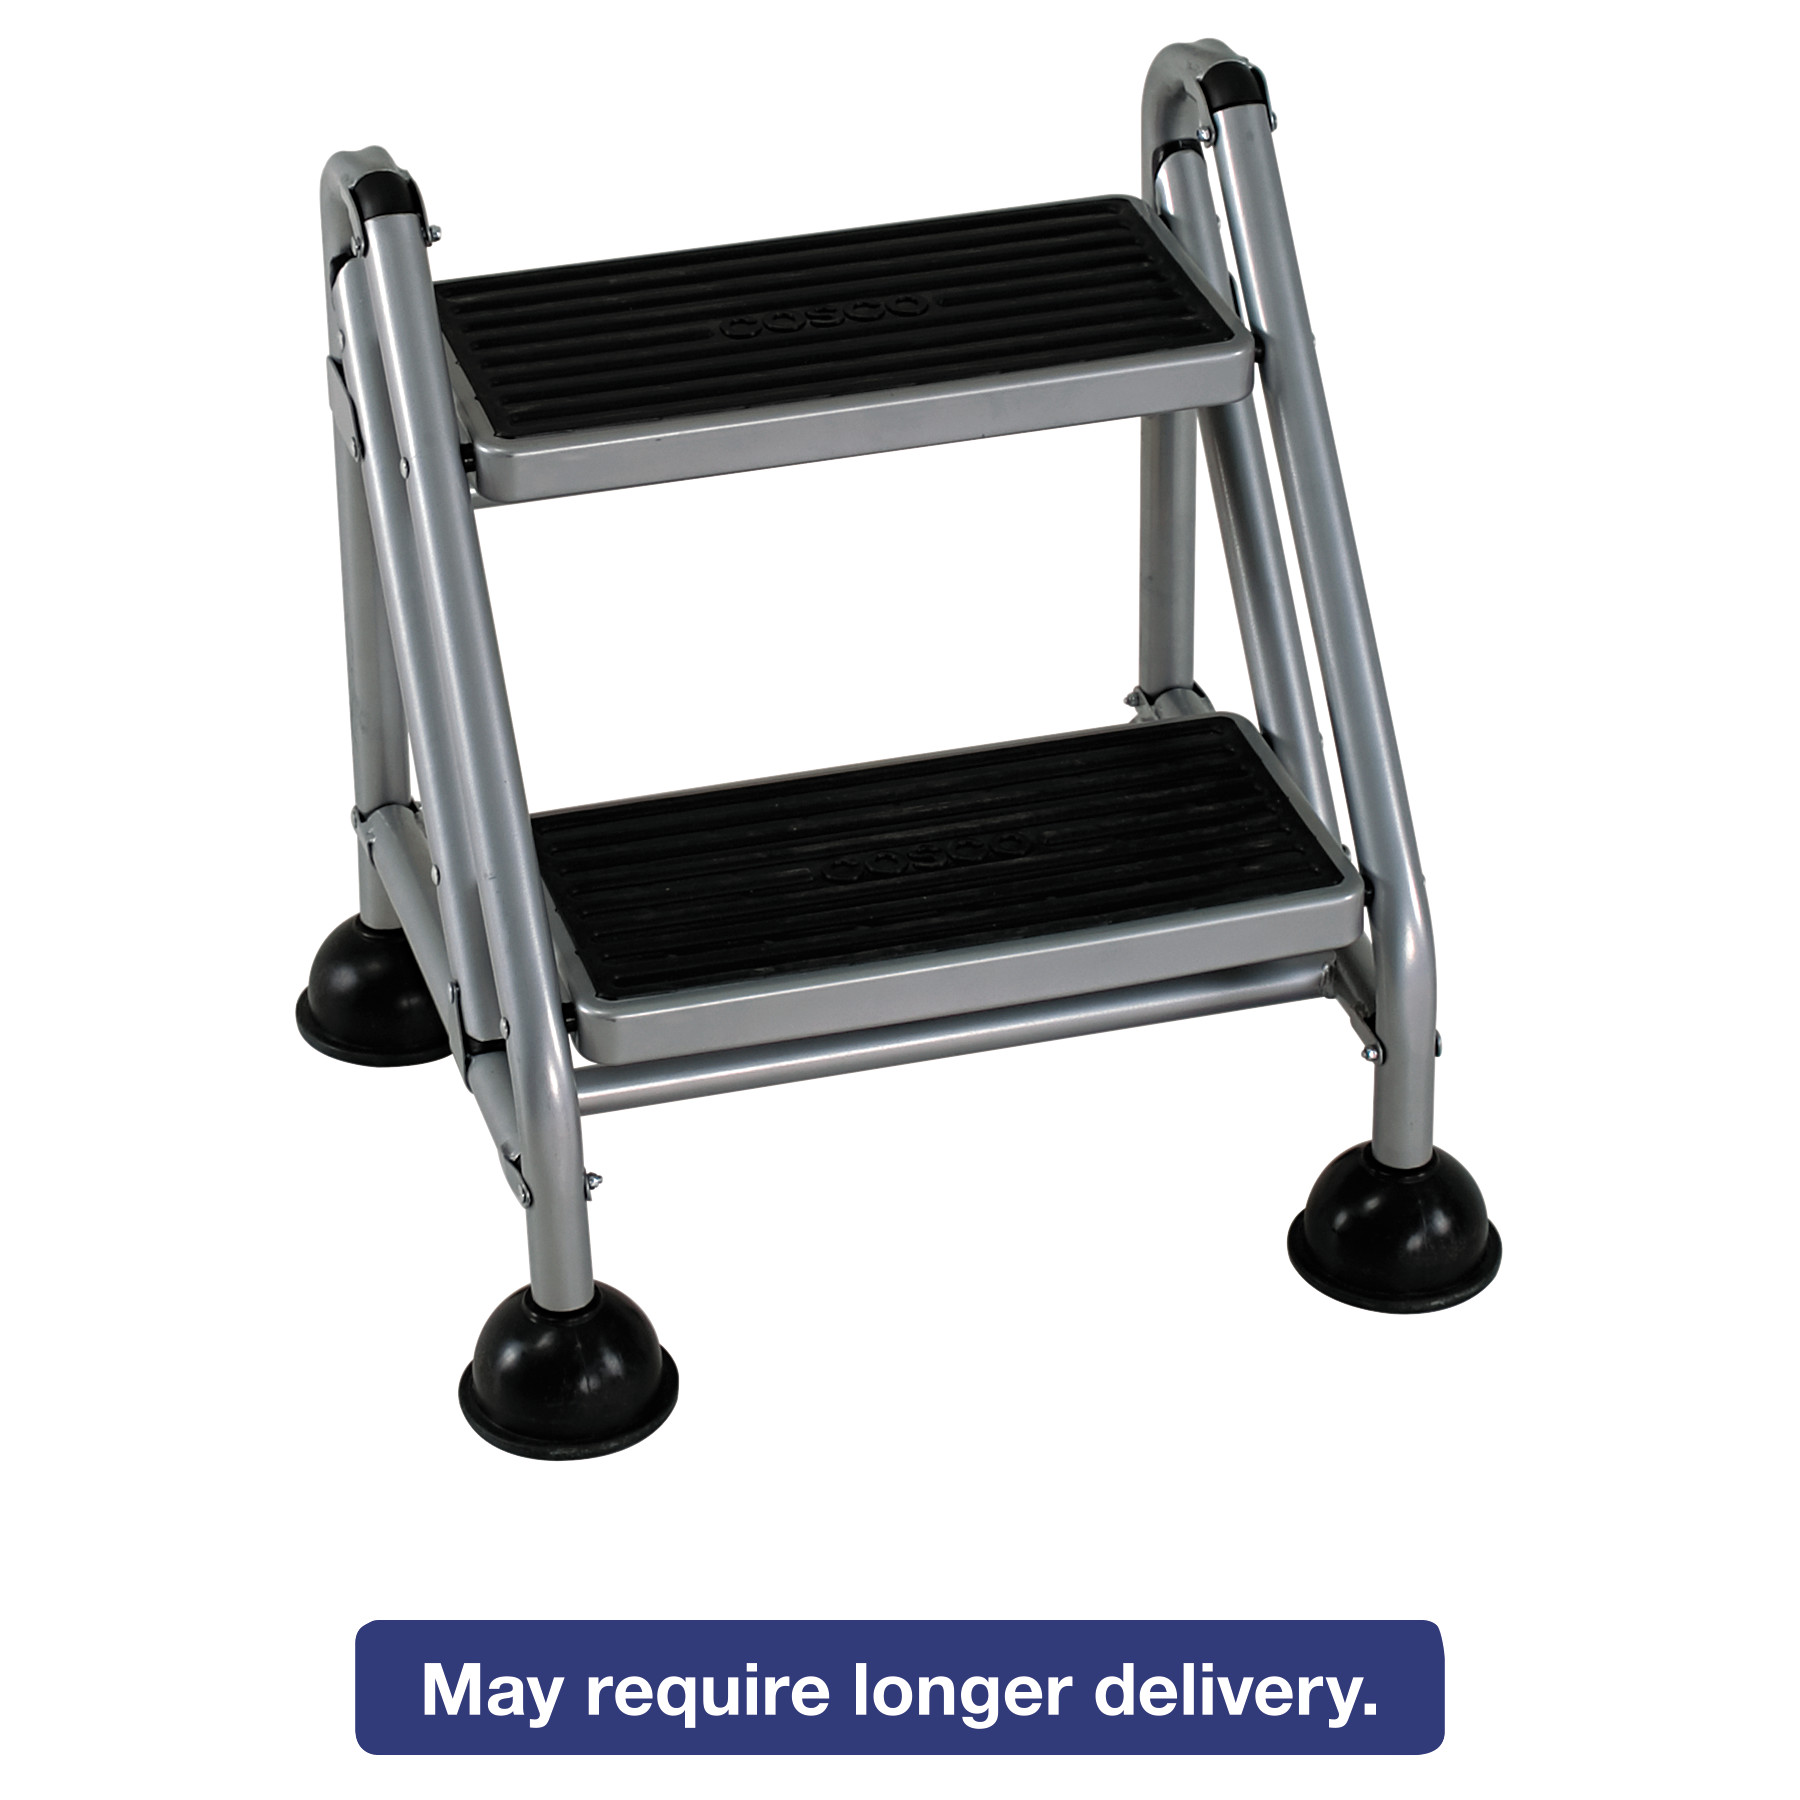 Cosco Rolling Commercial Step Stool 2 Step 19 7 10